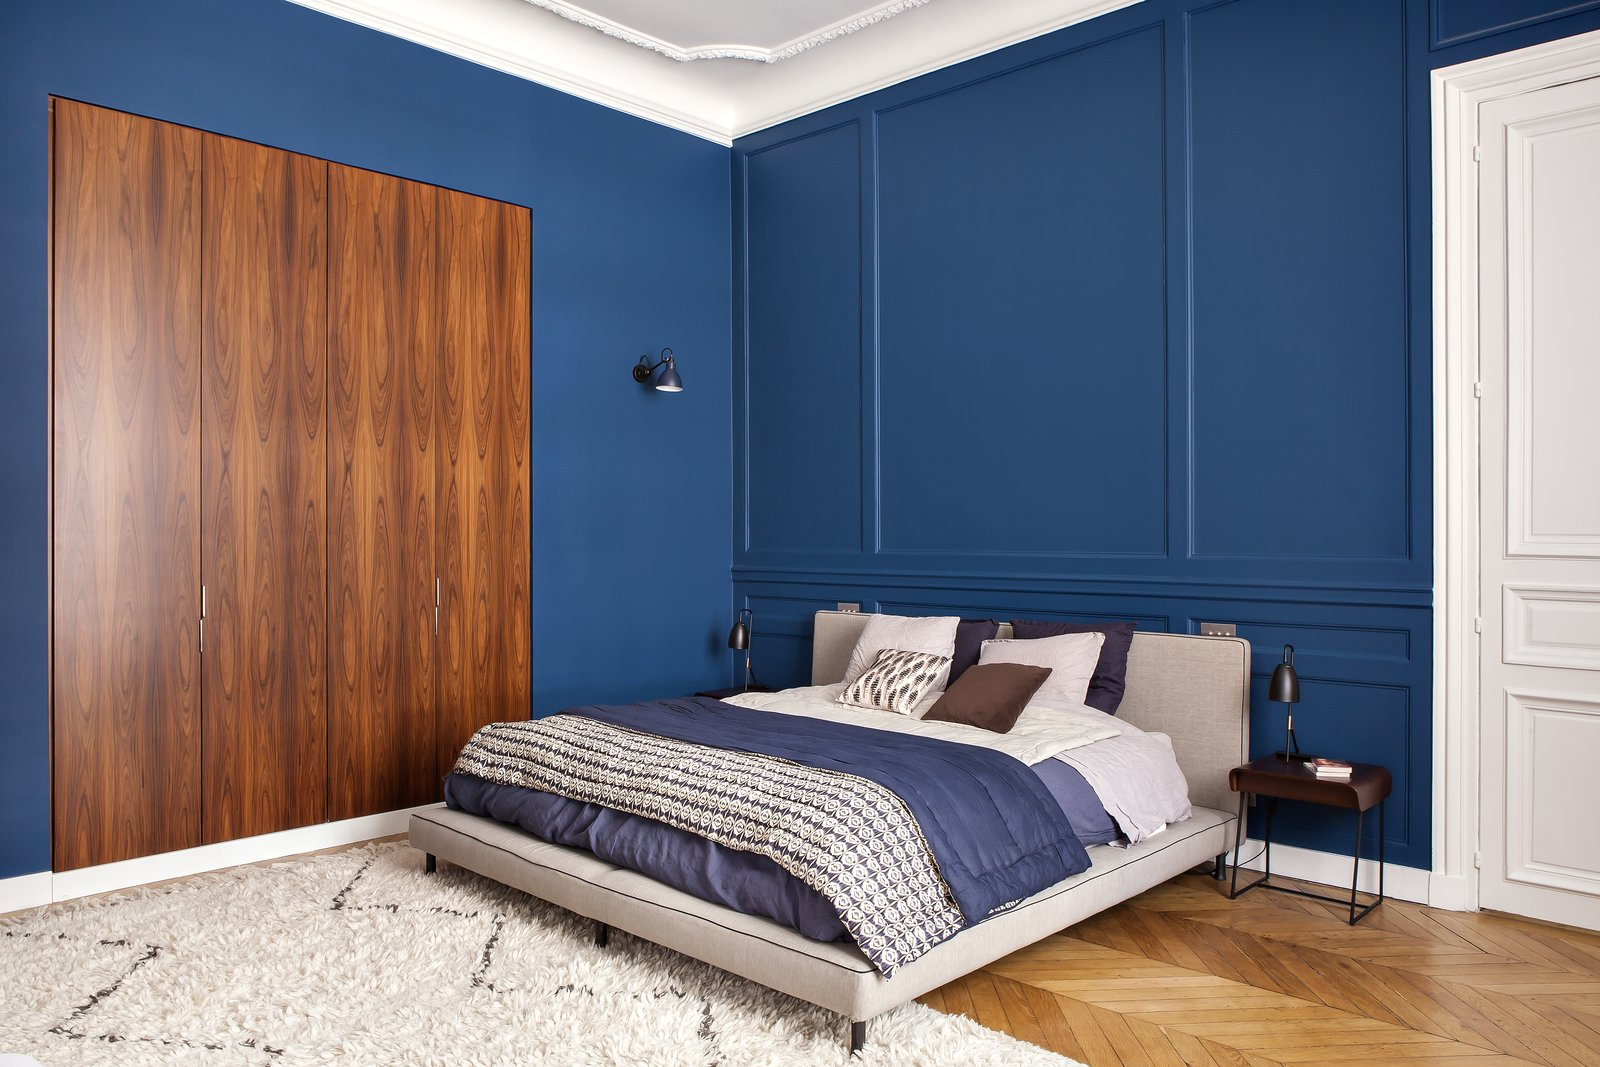 Bedroom, Rug, Night Stands, Storage, Medium Hardwood, Table, Wall, and Bed Bright and bold choices continue with the master bedroom. The walls have been painted a rich blue T0.30.20 from Sikkens.  Best Bedroom Medium Hardwood Storage Photos from A Parisian Abode Is Reborn With a Fresh, Unexpected Color Palette